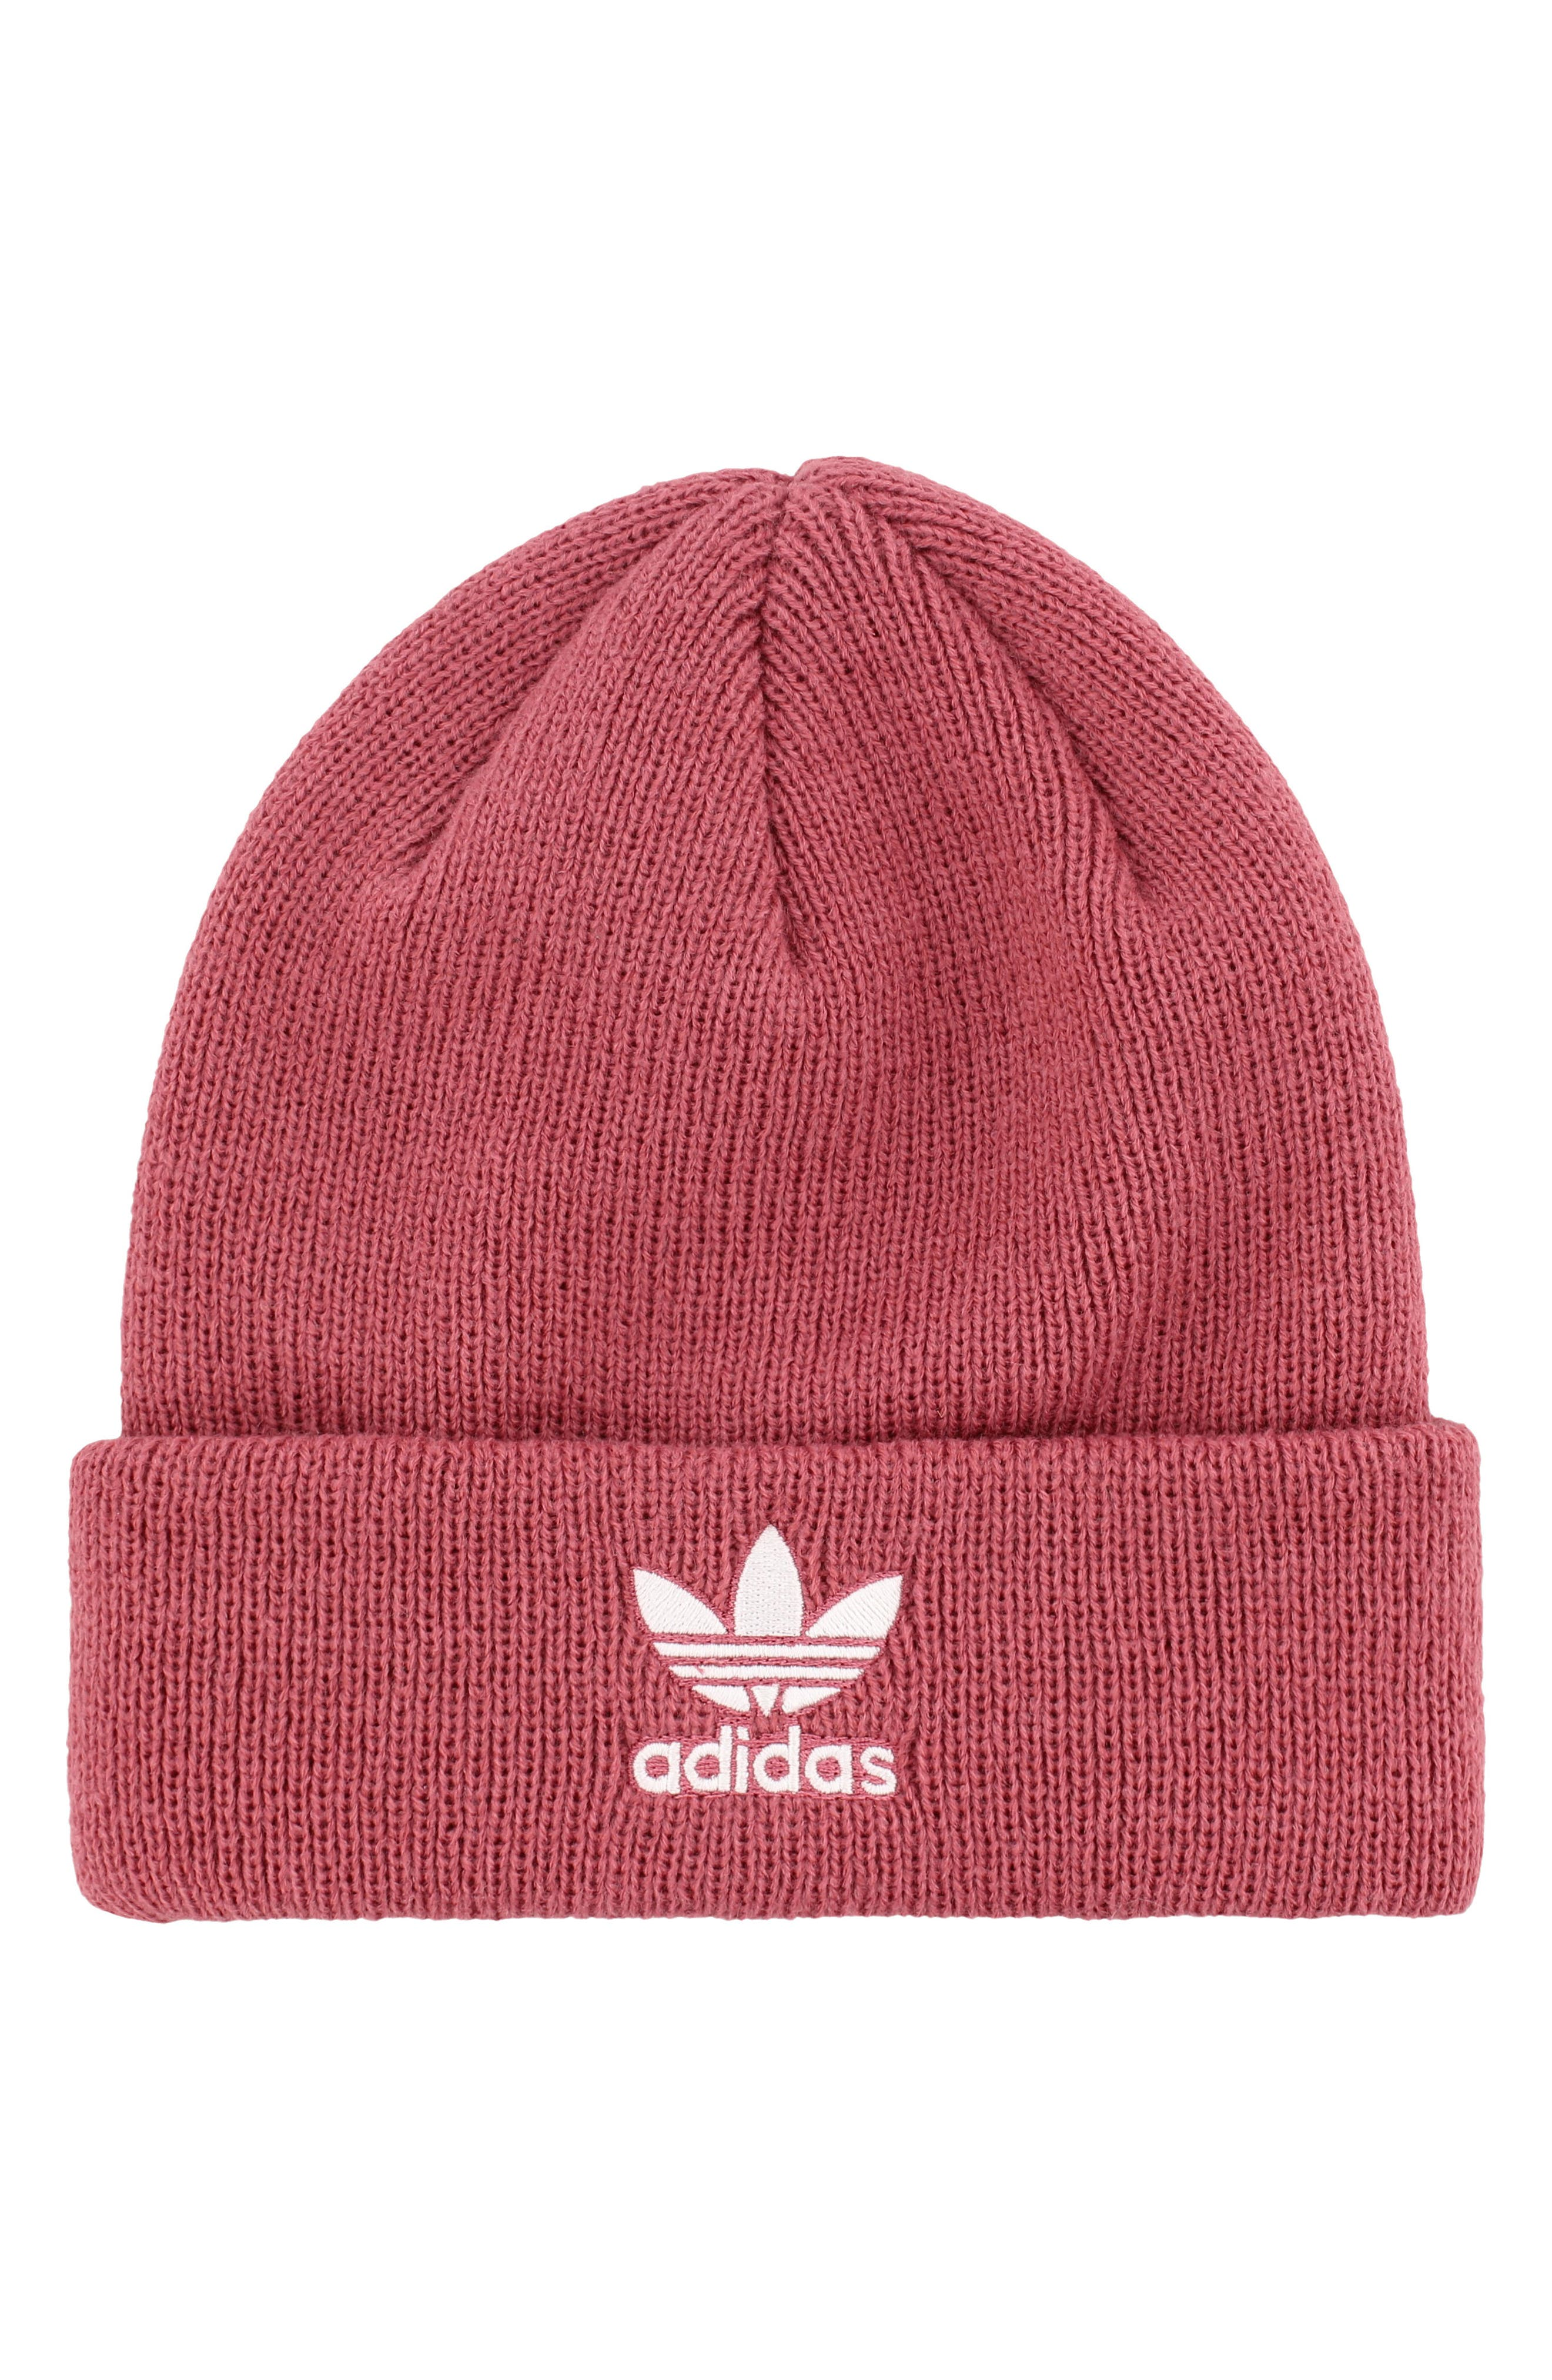 adidas Trefoil Beanie,                         Main,                         color, TRACE MAROON PINK/ WHITE